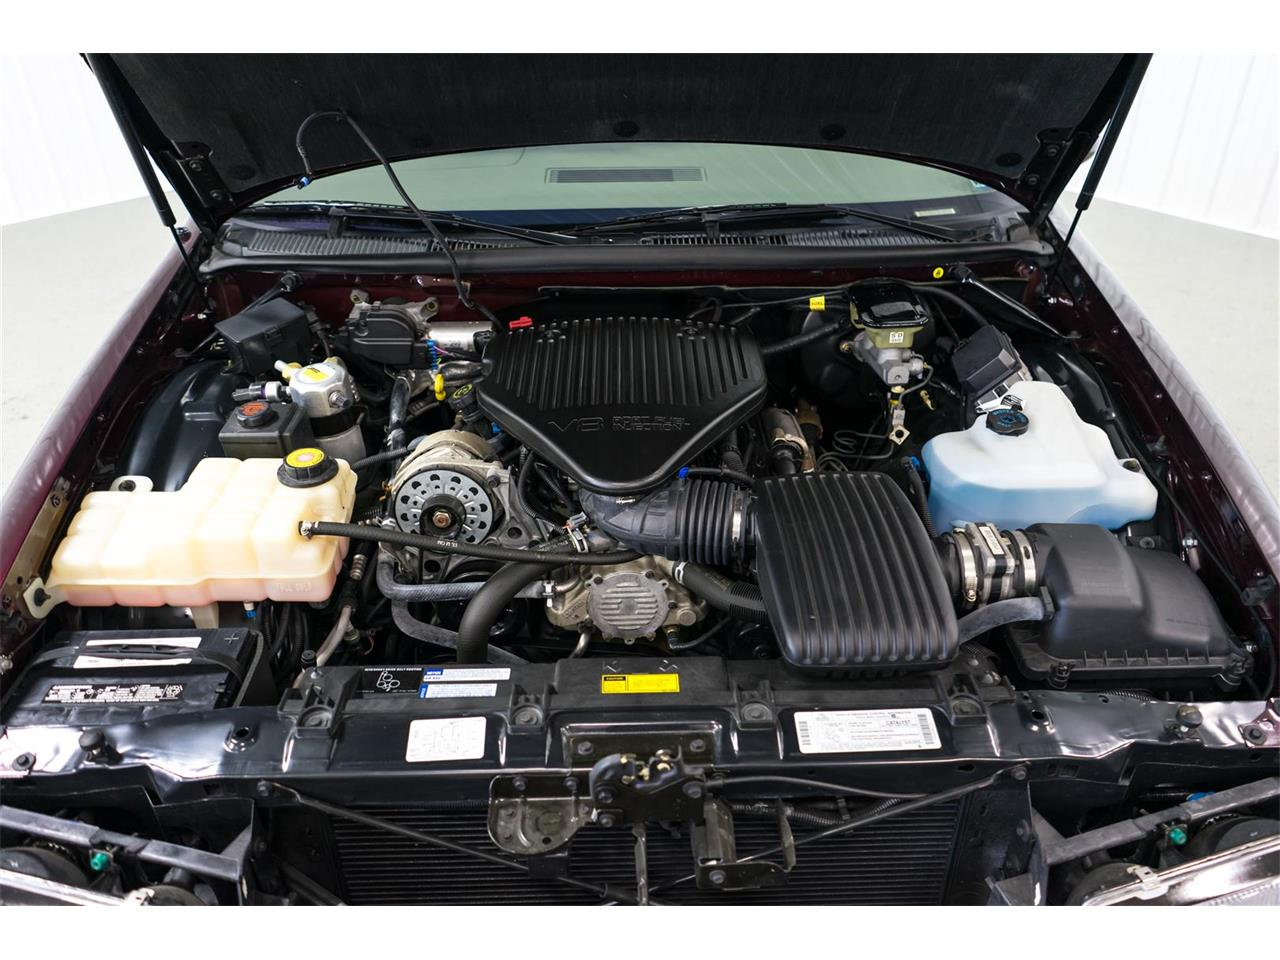 Large Picture of 1996 Chevrolet Impala SS located in Chambersburg Pennsylvania - $24,900.00 - QDDS